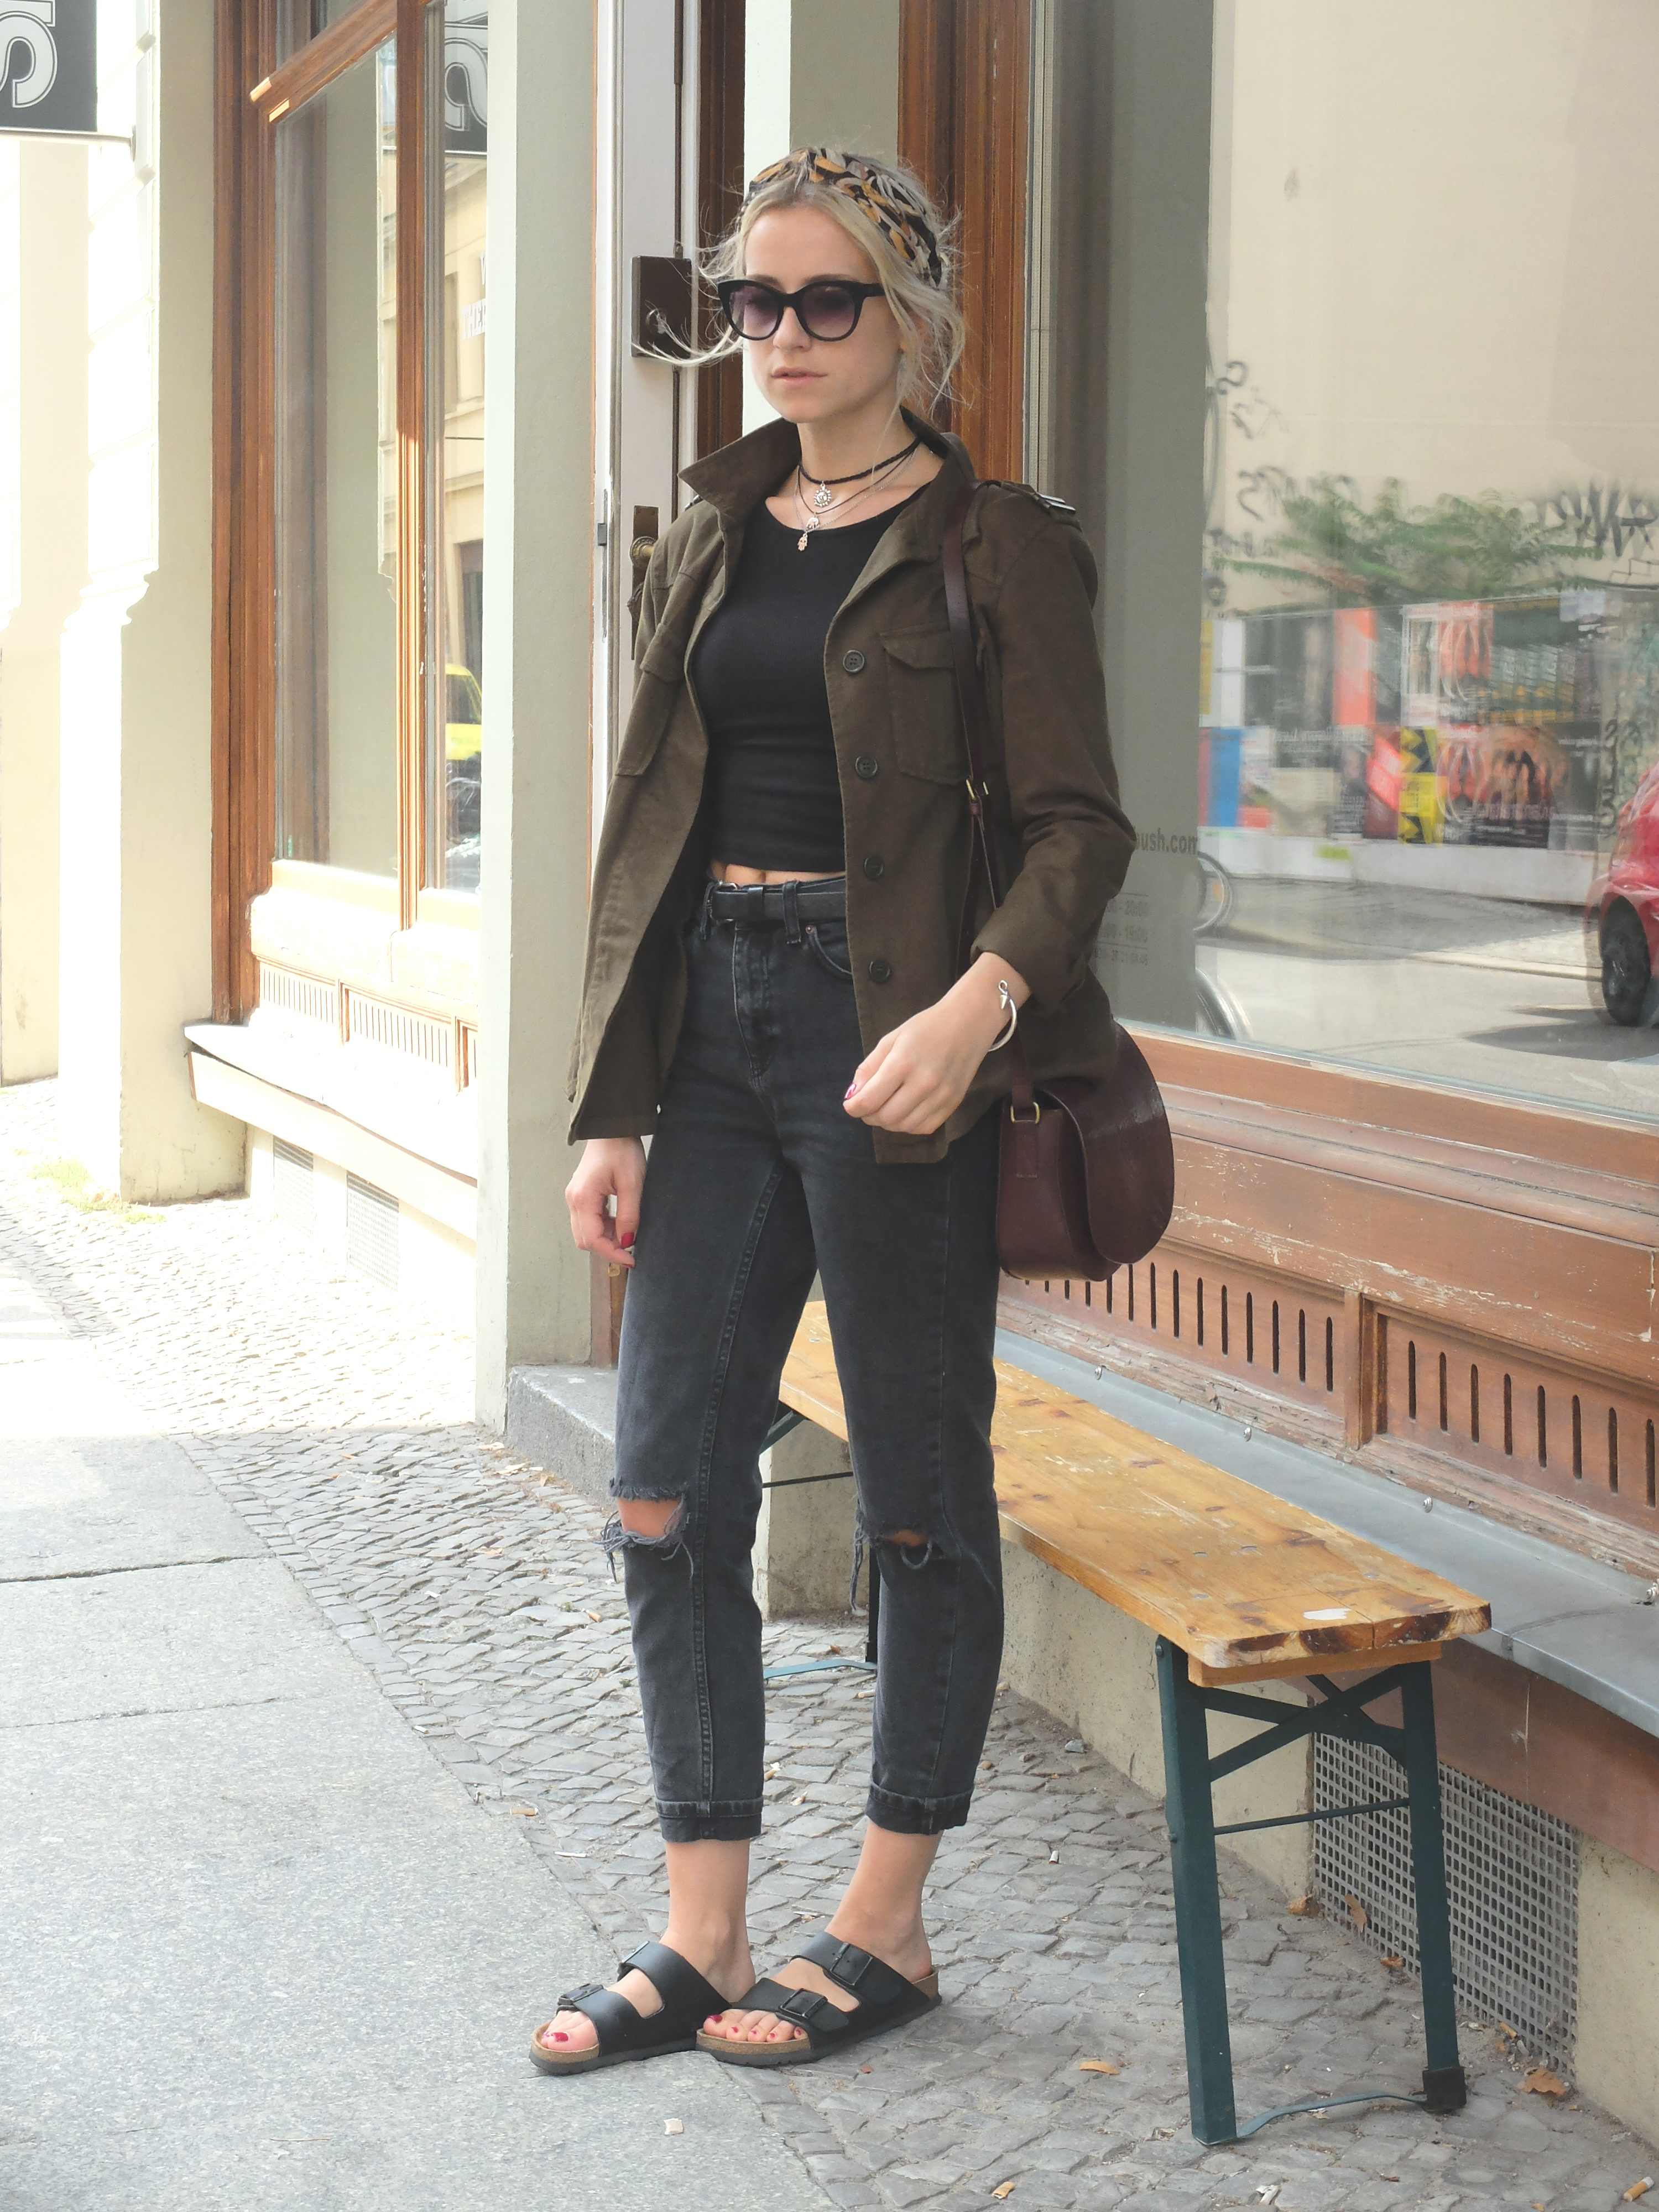 berlin outfitinspiration